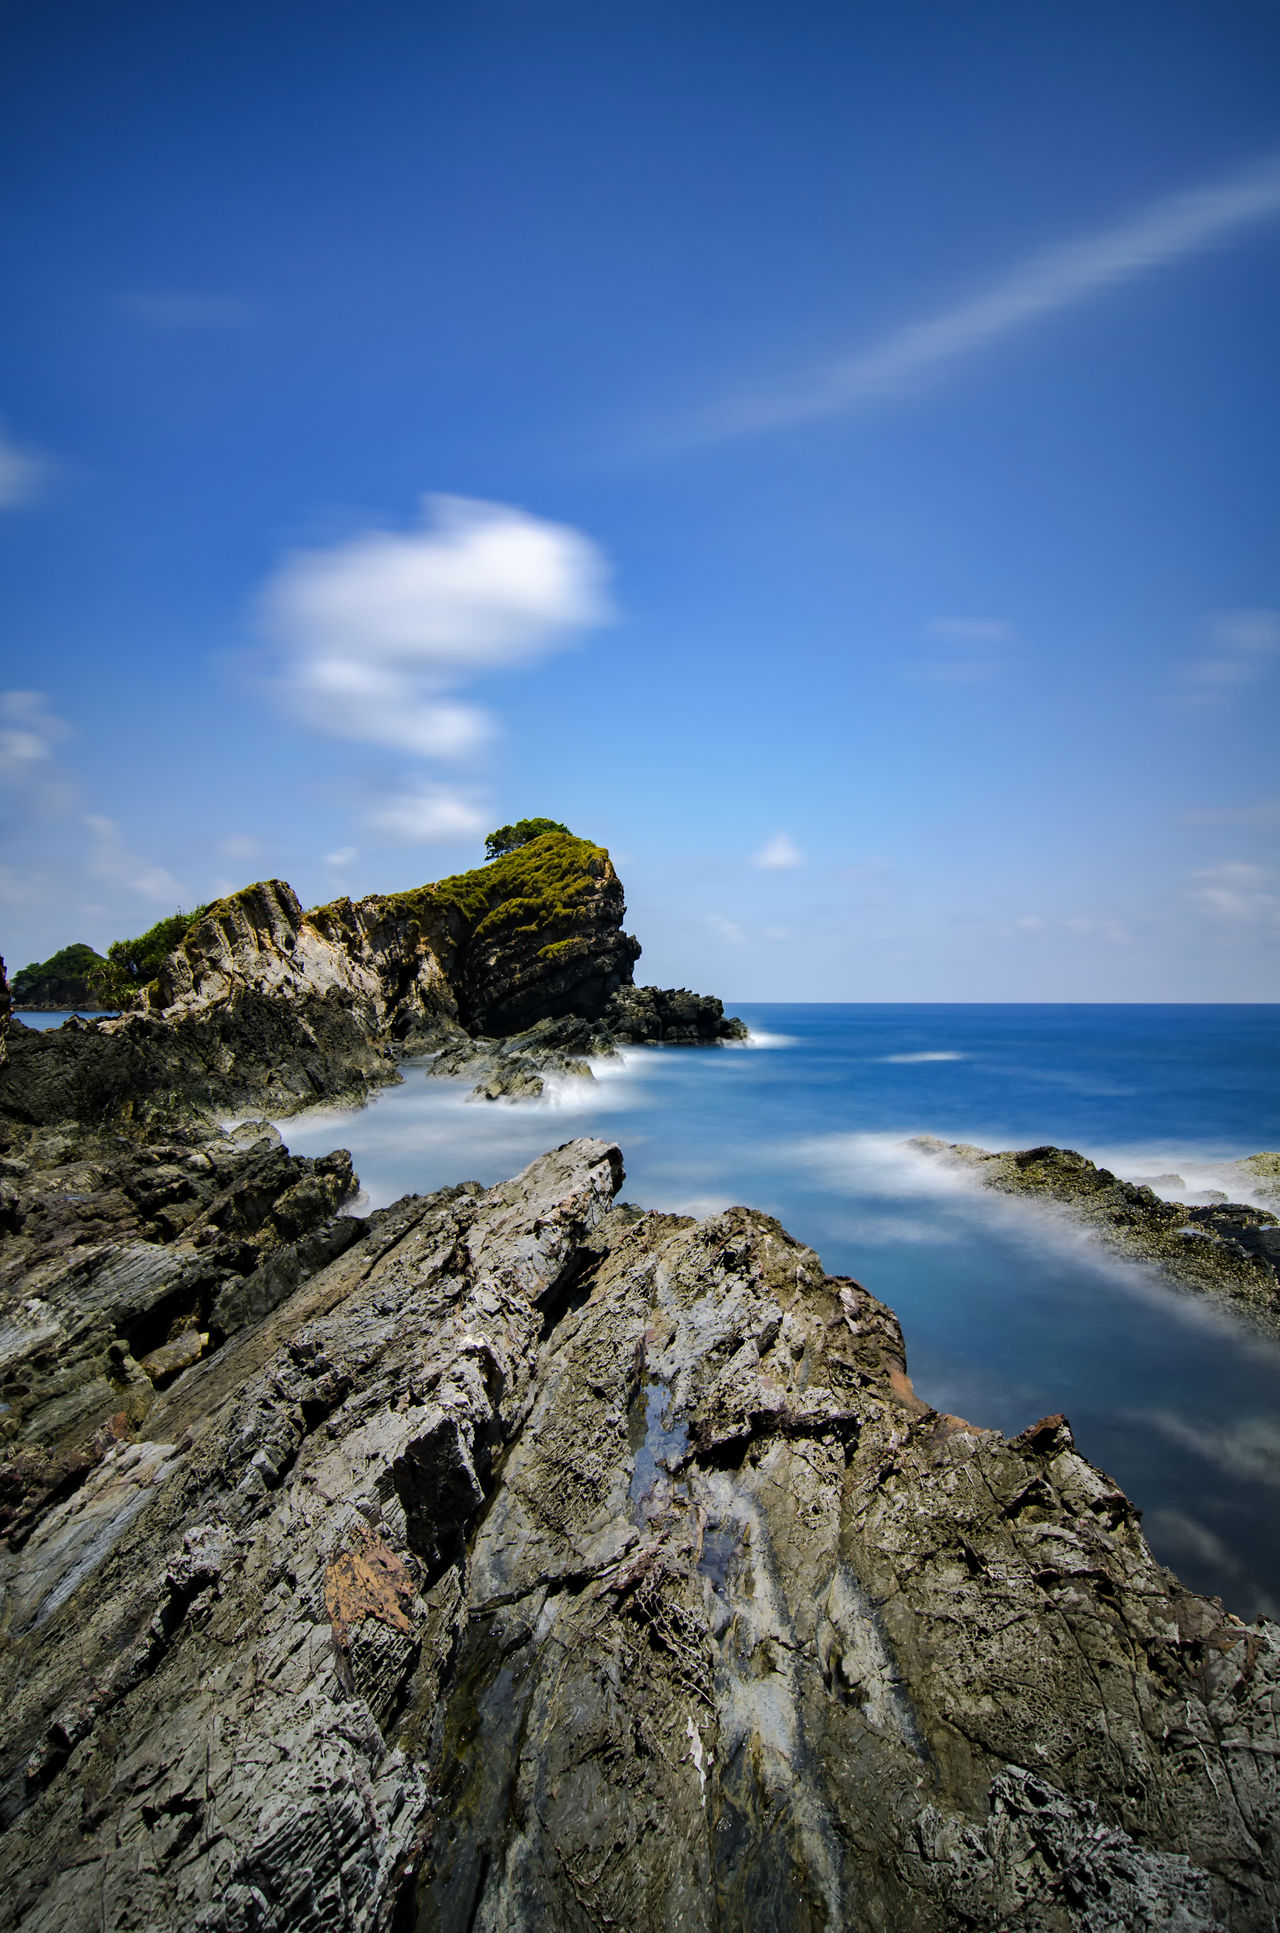 beautiful tropical sea with unique rock formation. long exposure shot. cloudy sky wnd motion effect Beach Beauty In Nature Cloud - Sky Clouds And Sky Day Horizon Over Water Island, Landscape Nature No People Outdoors Rock Rock - Object Scenery Scenics Sea Sea View Sky Vacations Water